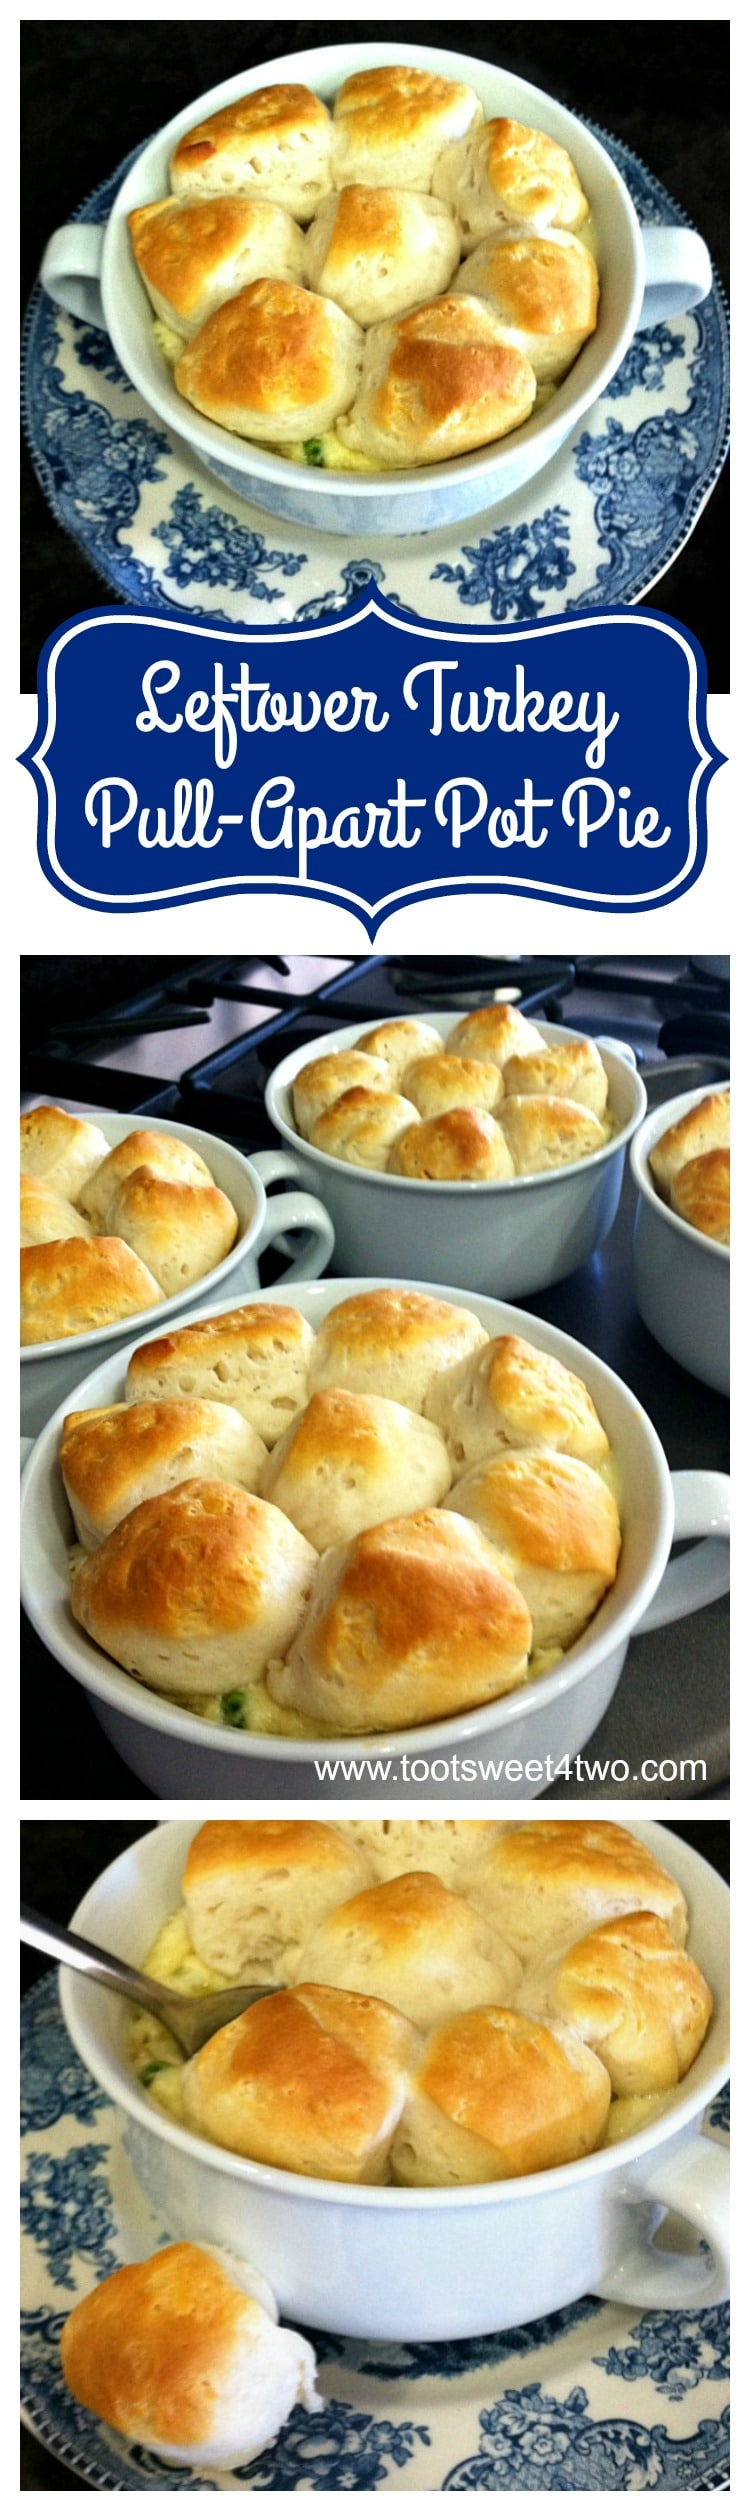 Leftover Turkey Pull-Apart Pot Pie - an easy and delicious leftover recipe